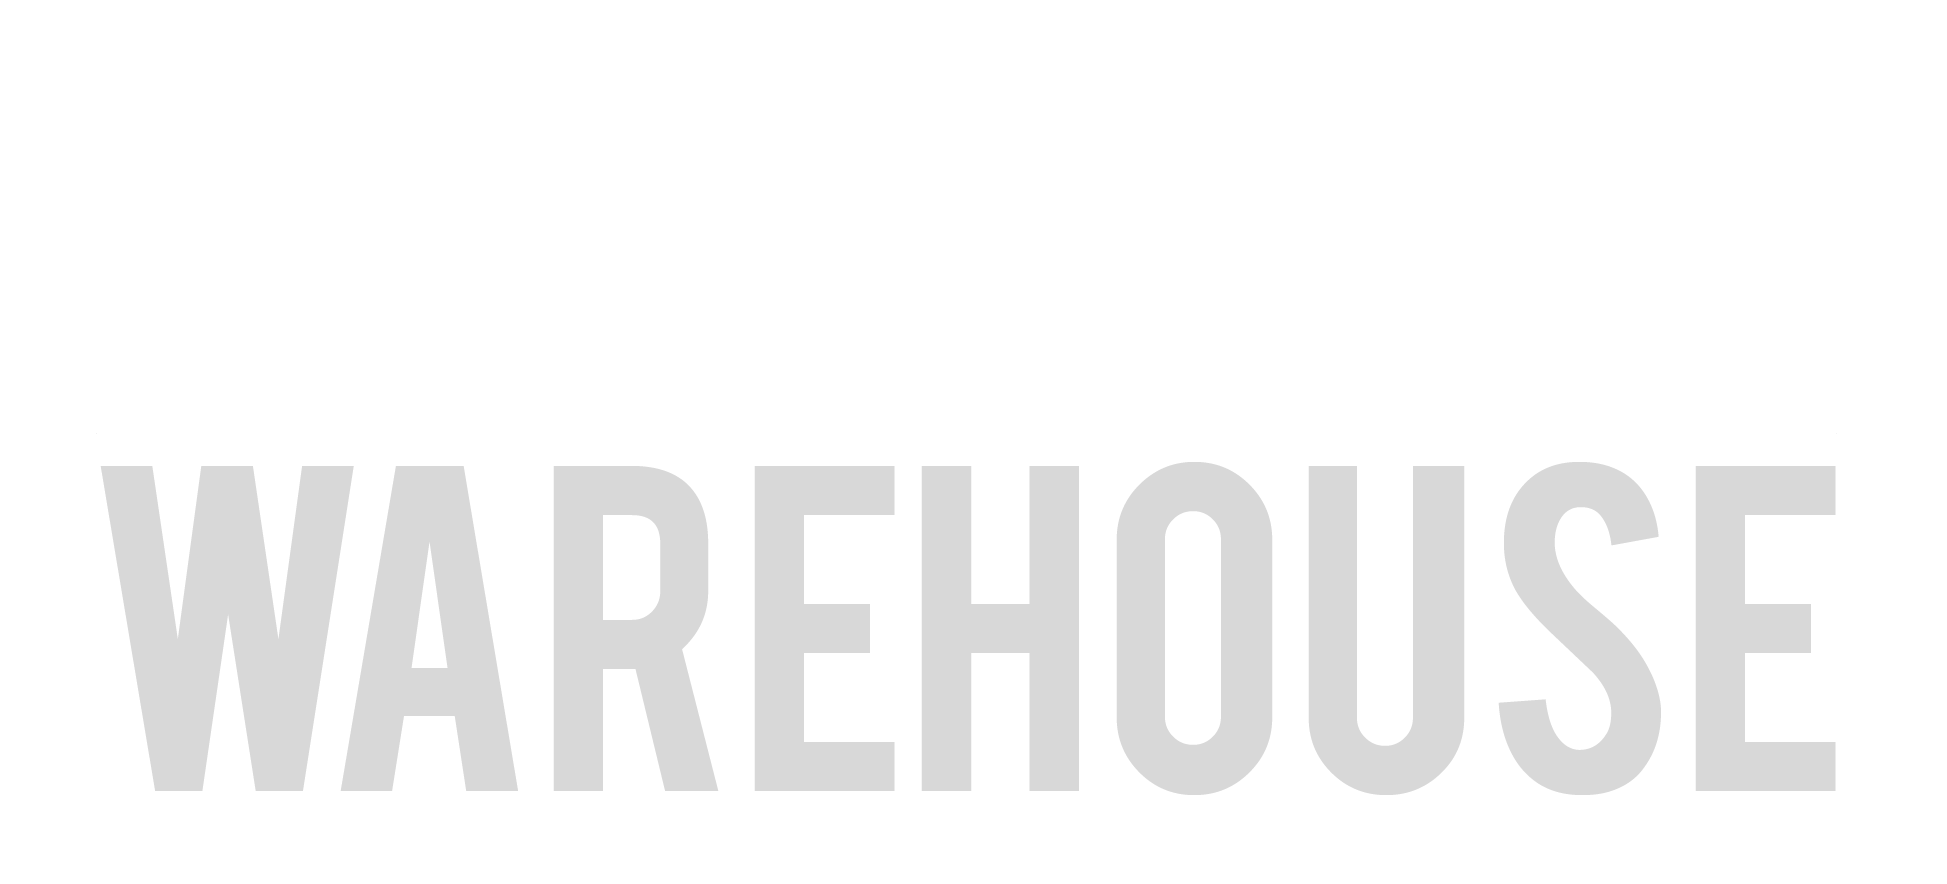 Riflescope Warehouse